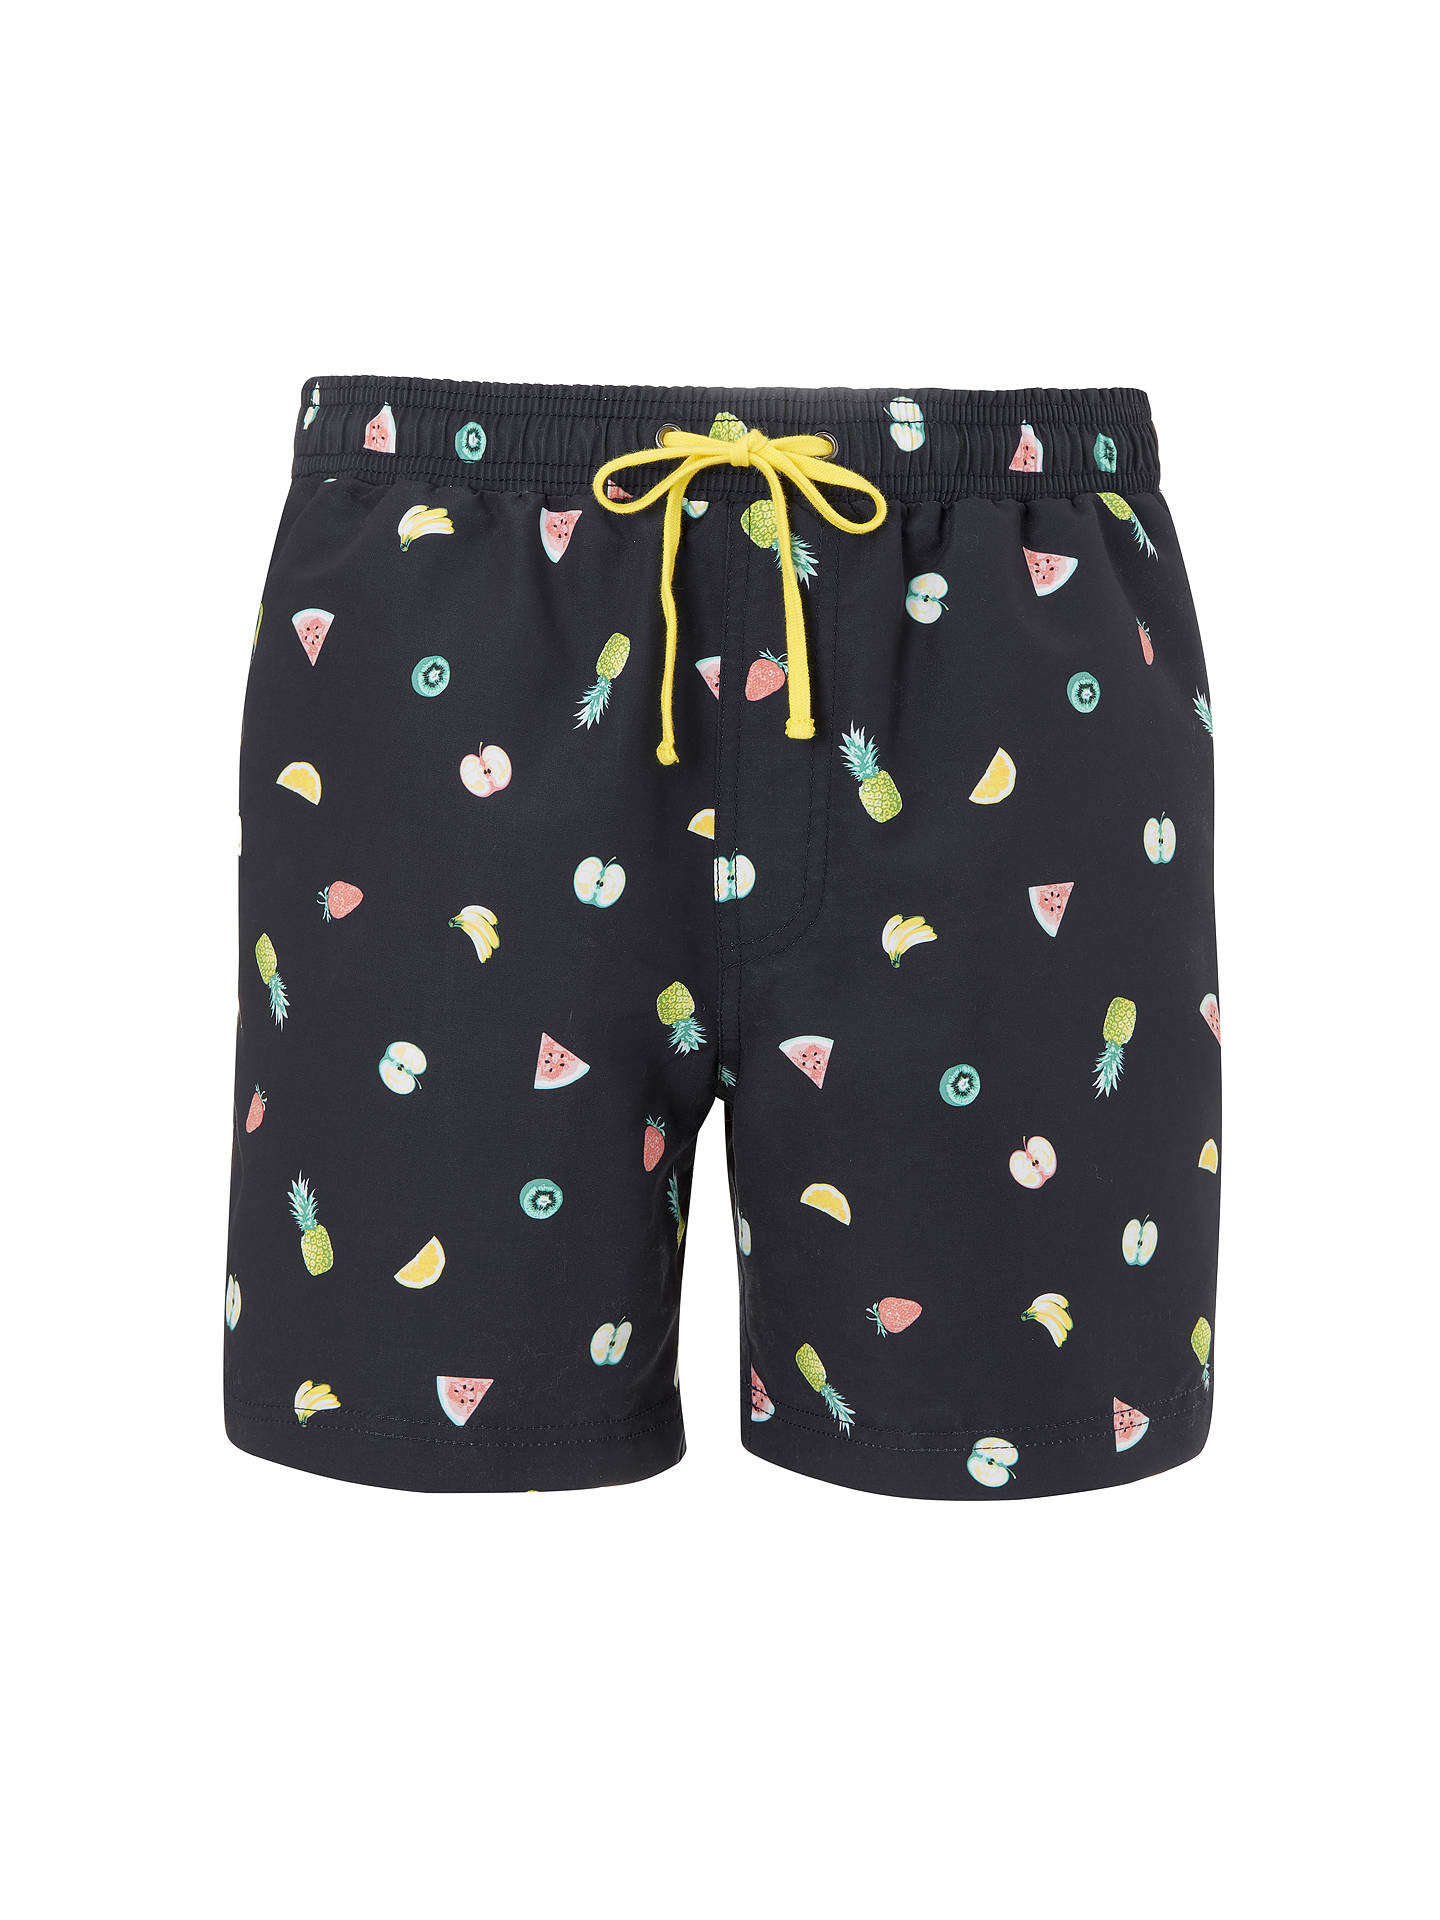 BuyJohn Lewis & Partners Fruit Print Swim Shorts, Navy, S Online at johnlewis.com